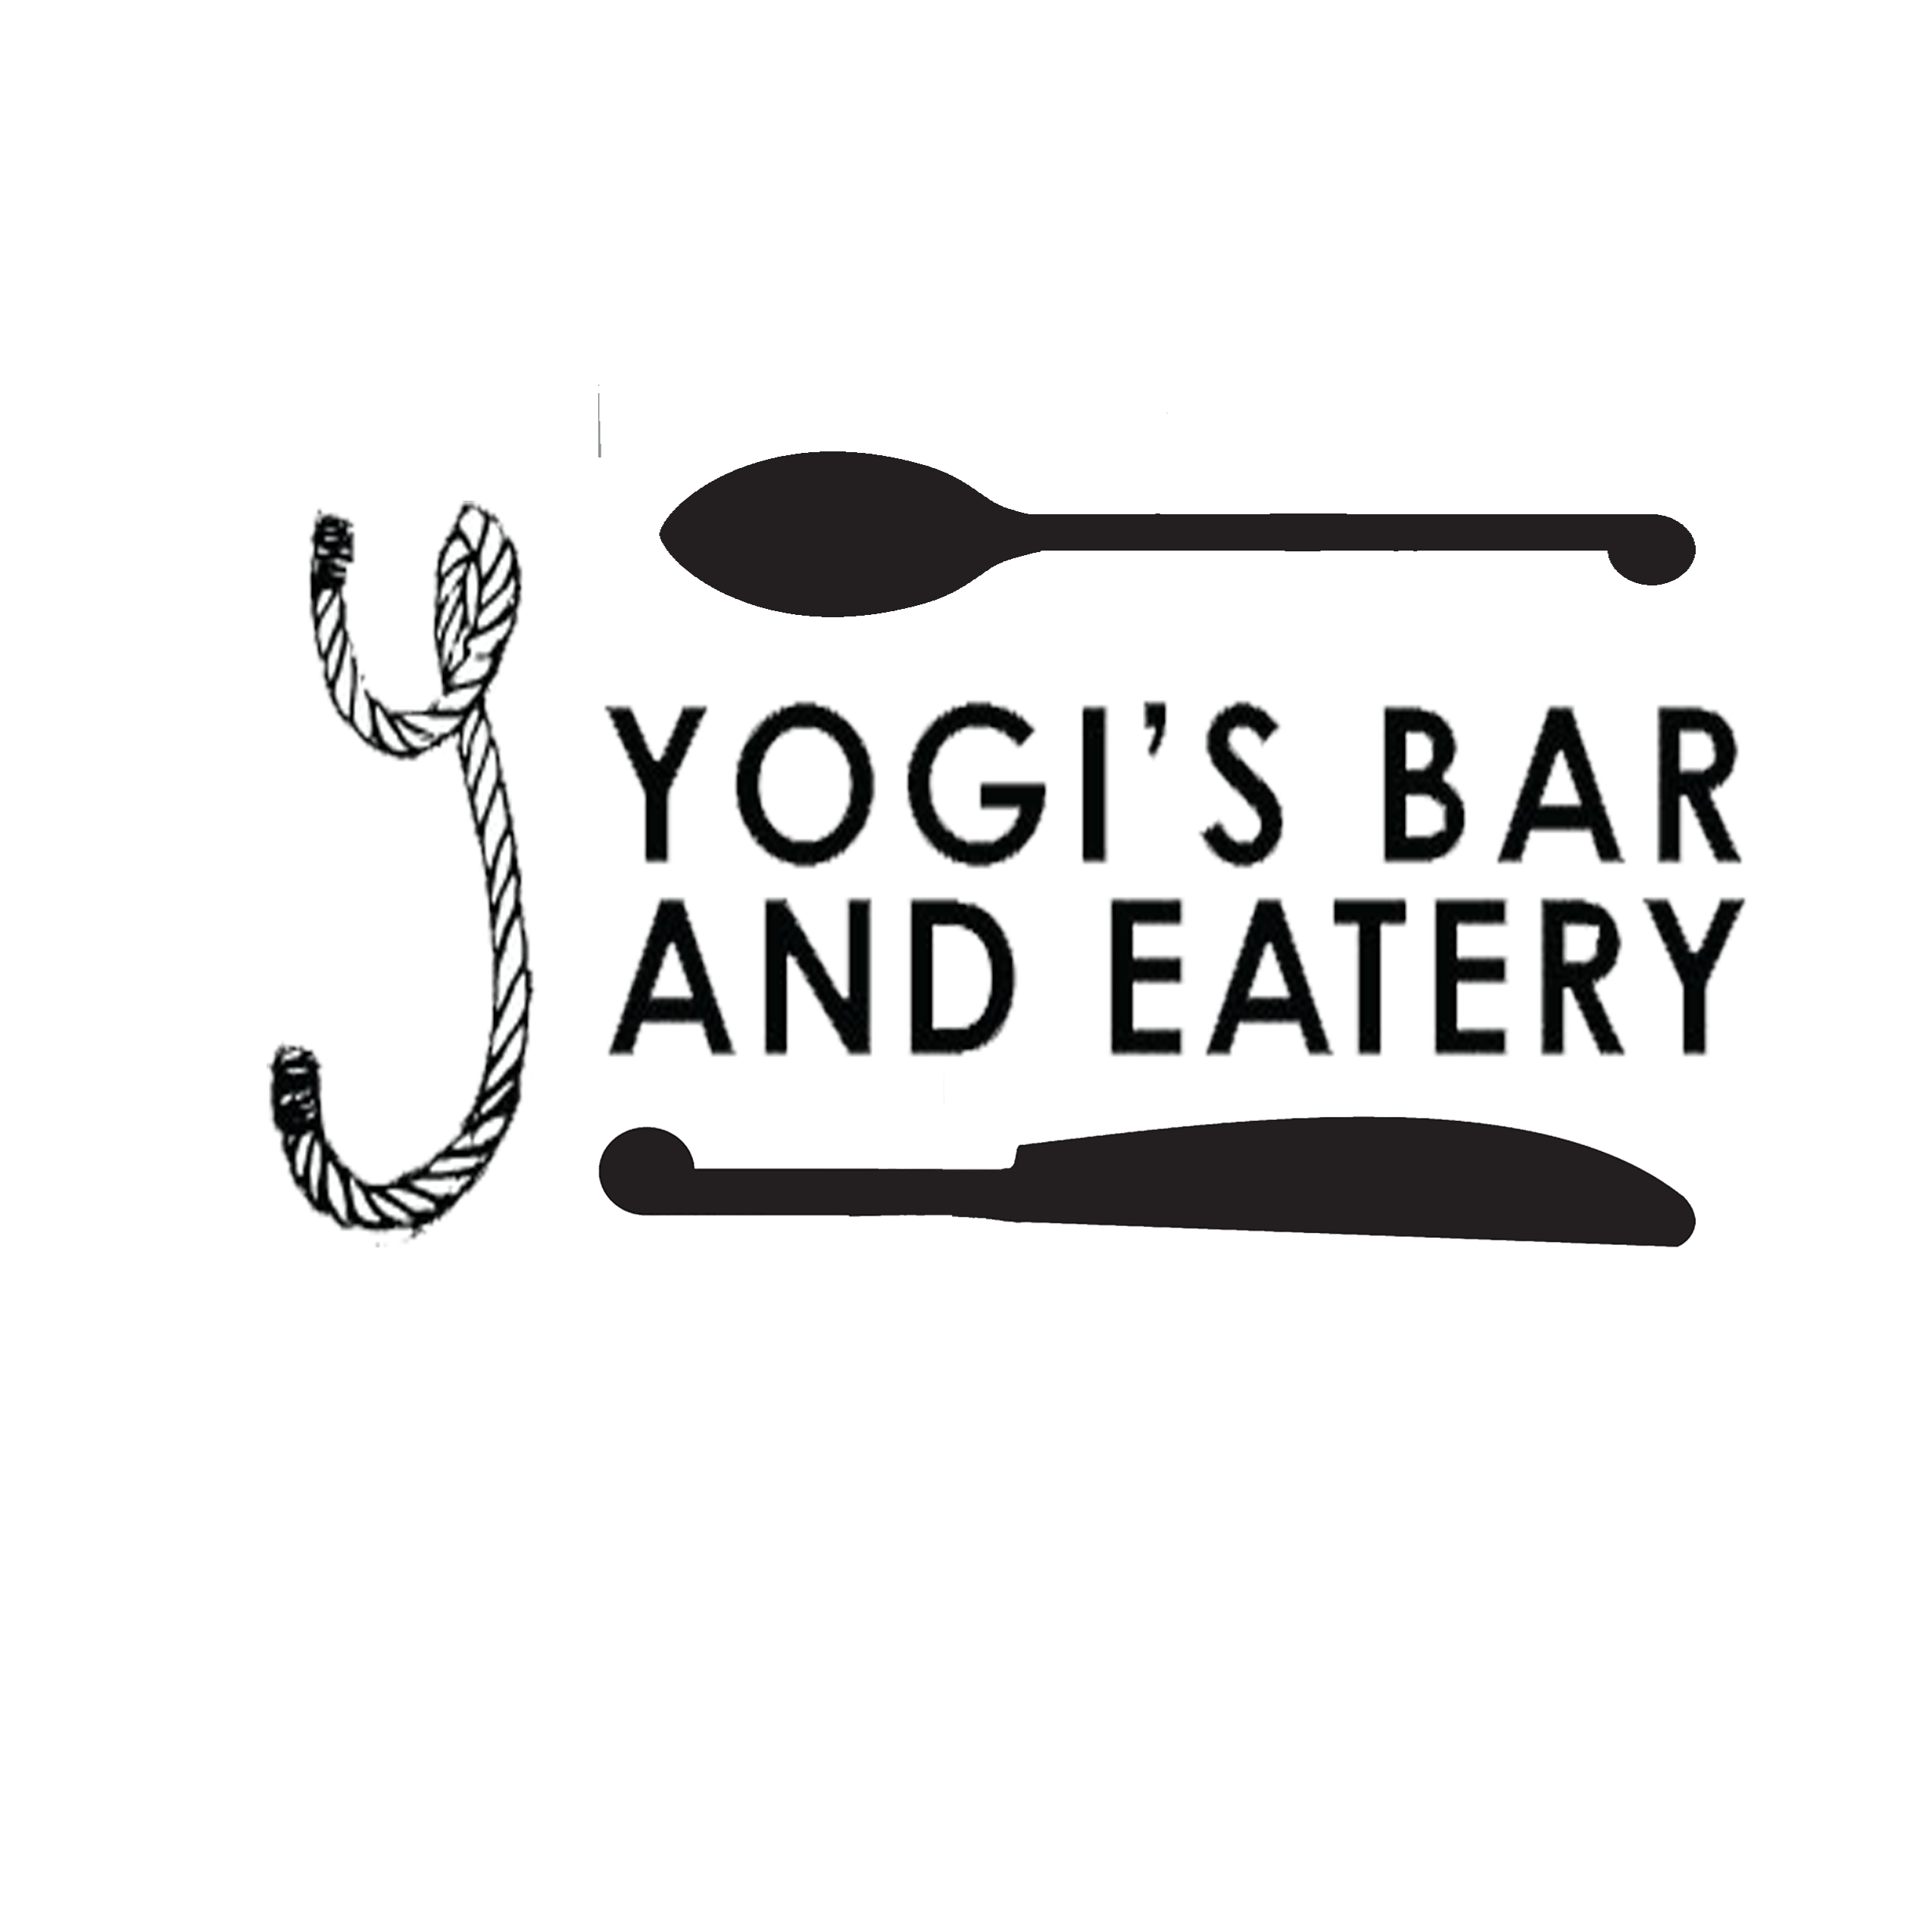 Yogi's Bar and Eatery